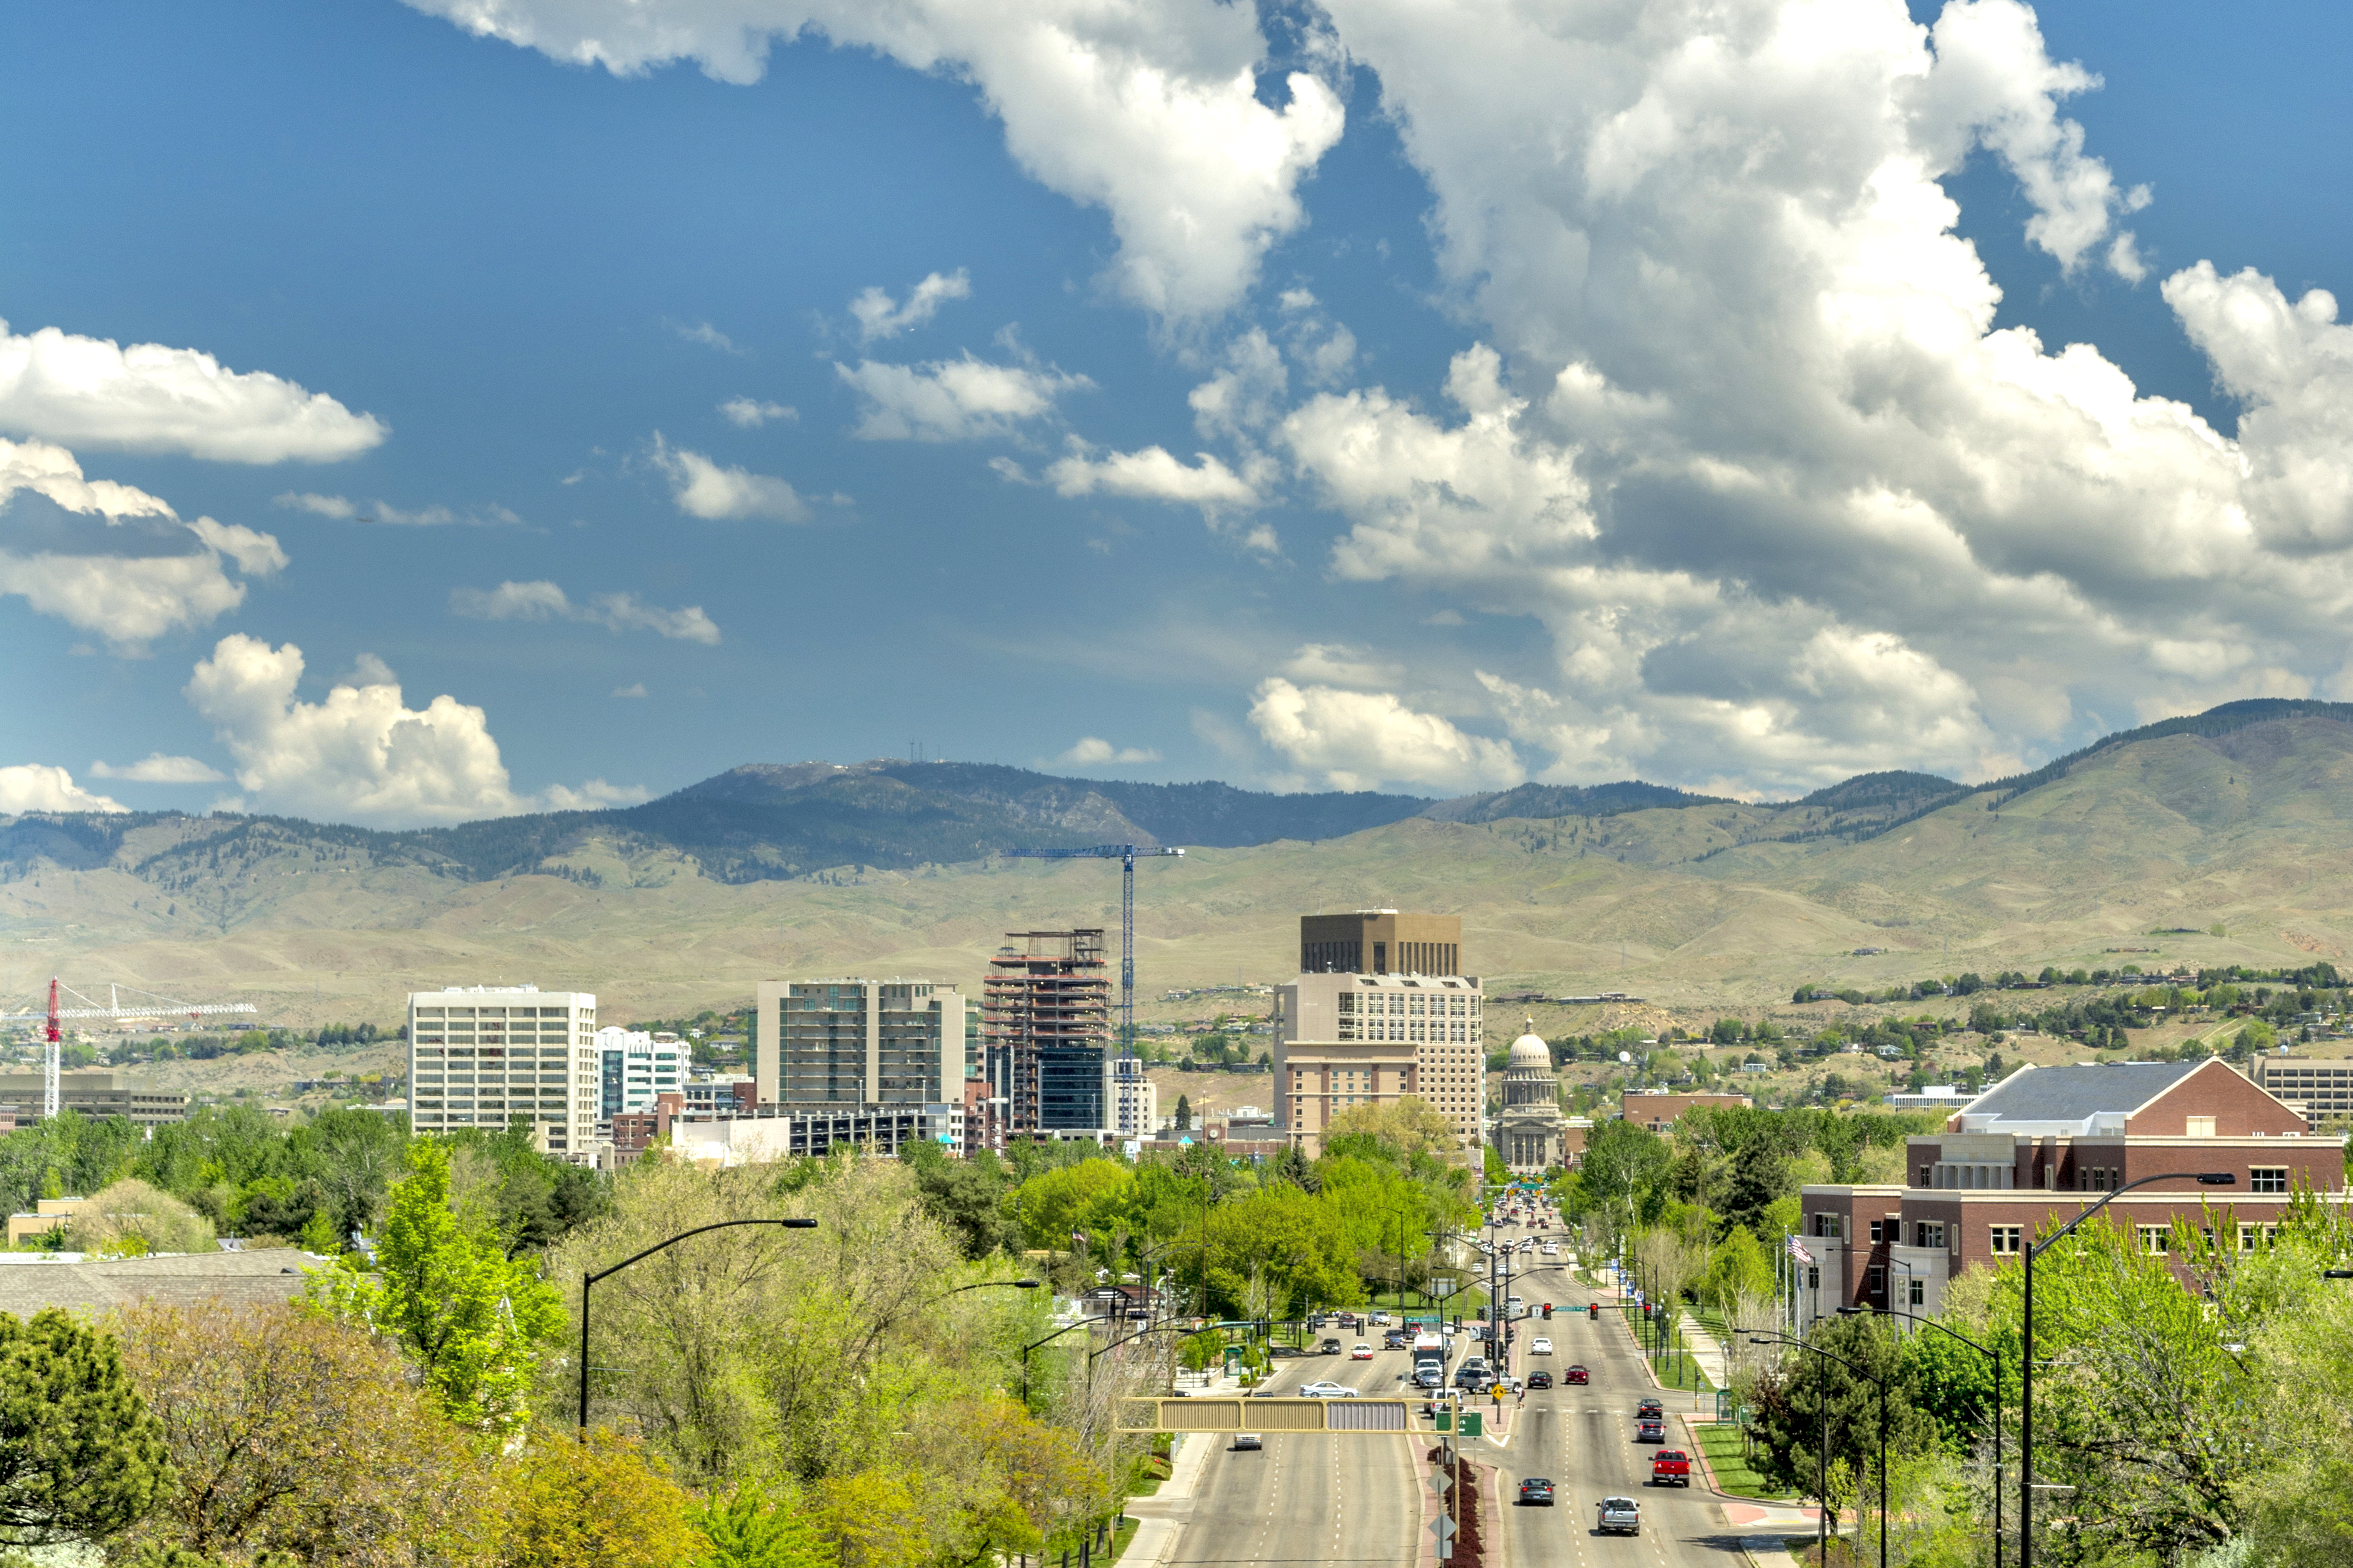 Boise, Idaho. Boise's outdoor splendors stretch as wide as the horizon, but there are plenty of cultural standouts as well, including the  75-year-old Boise Art Museum, the annual Shakespeare festival, and a vibrant Basque community, which dates to the early 1900s.